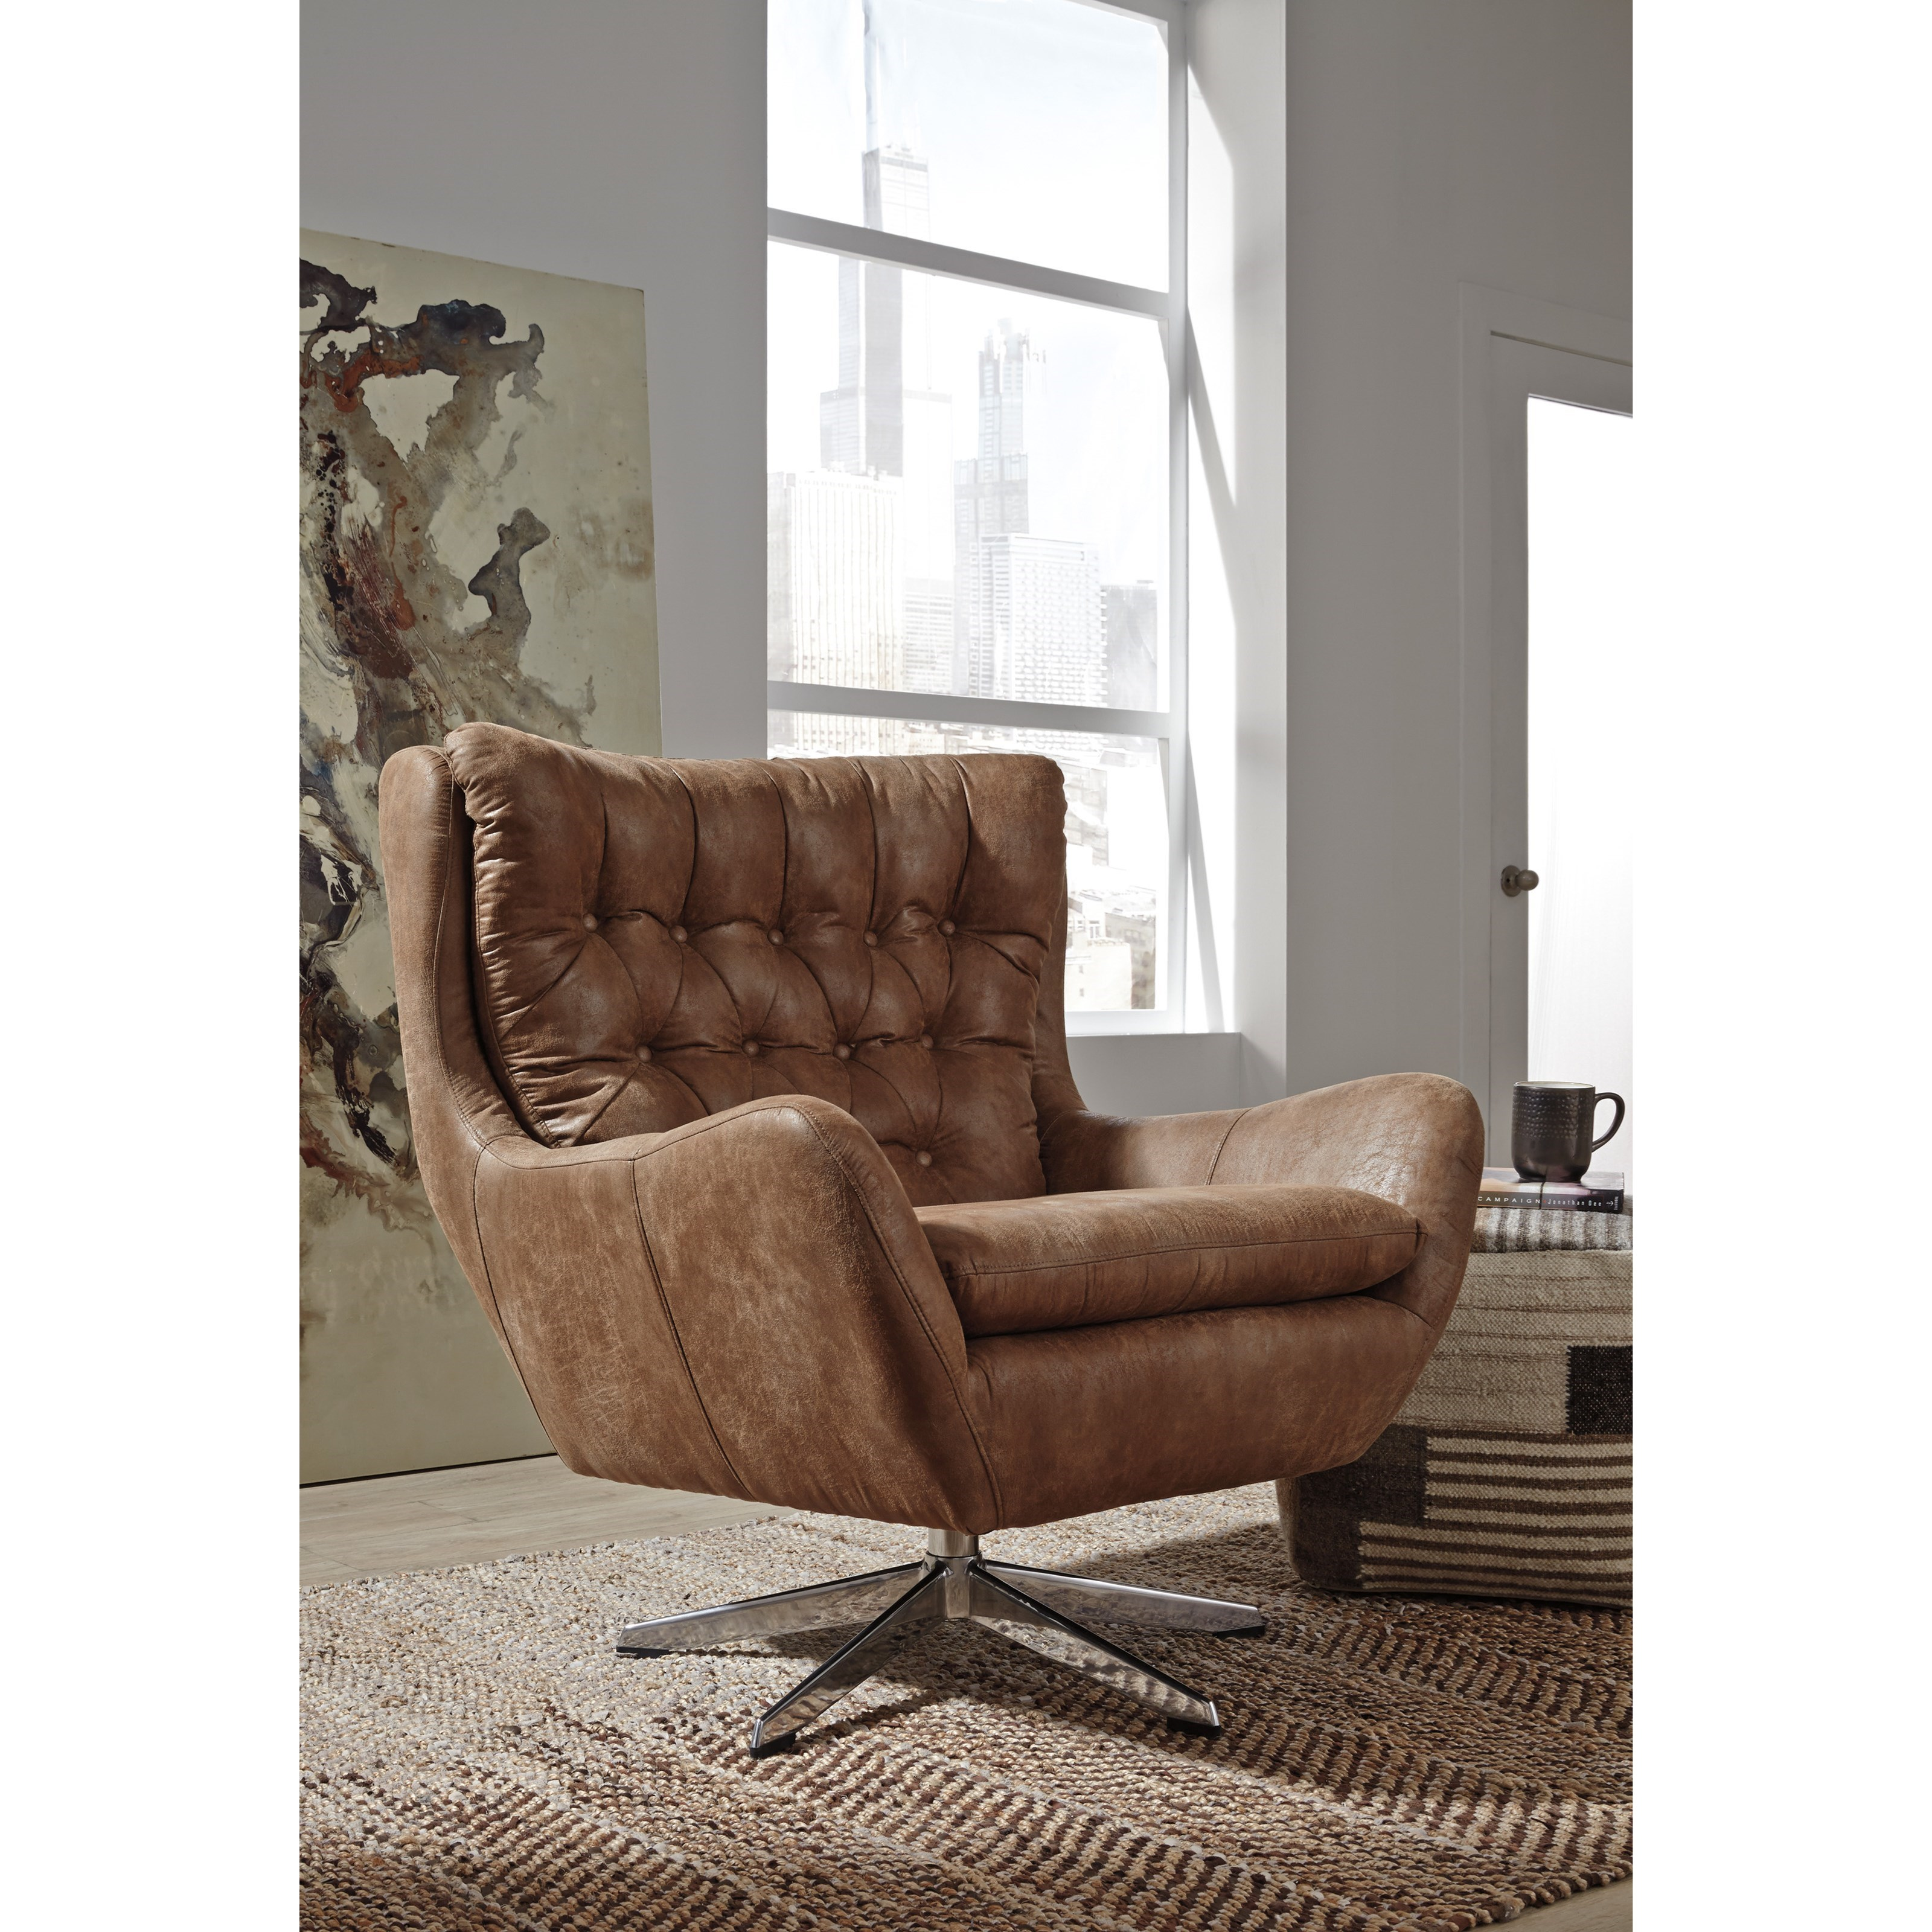 Block Base Accent Chair: Signature Design By Ashley Velburg Transitional Swivel